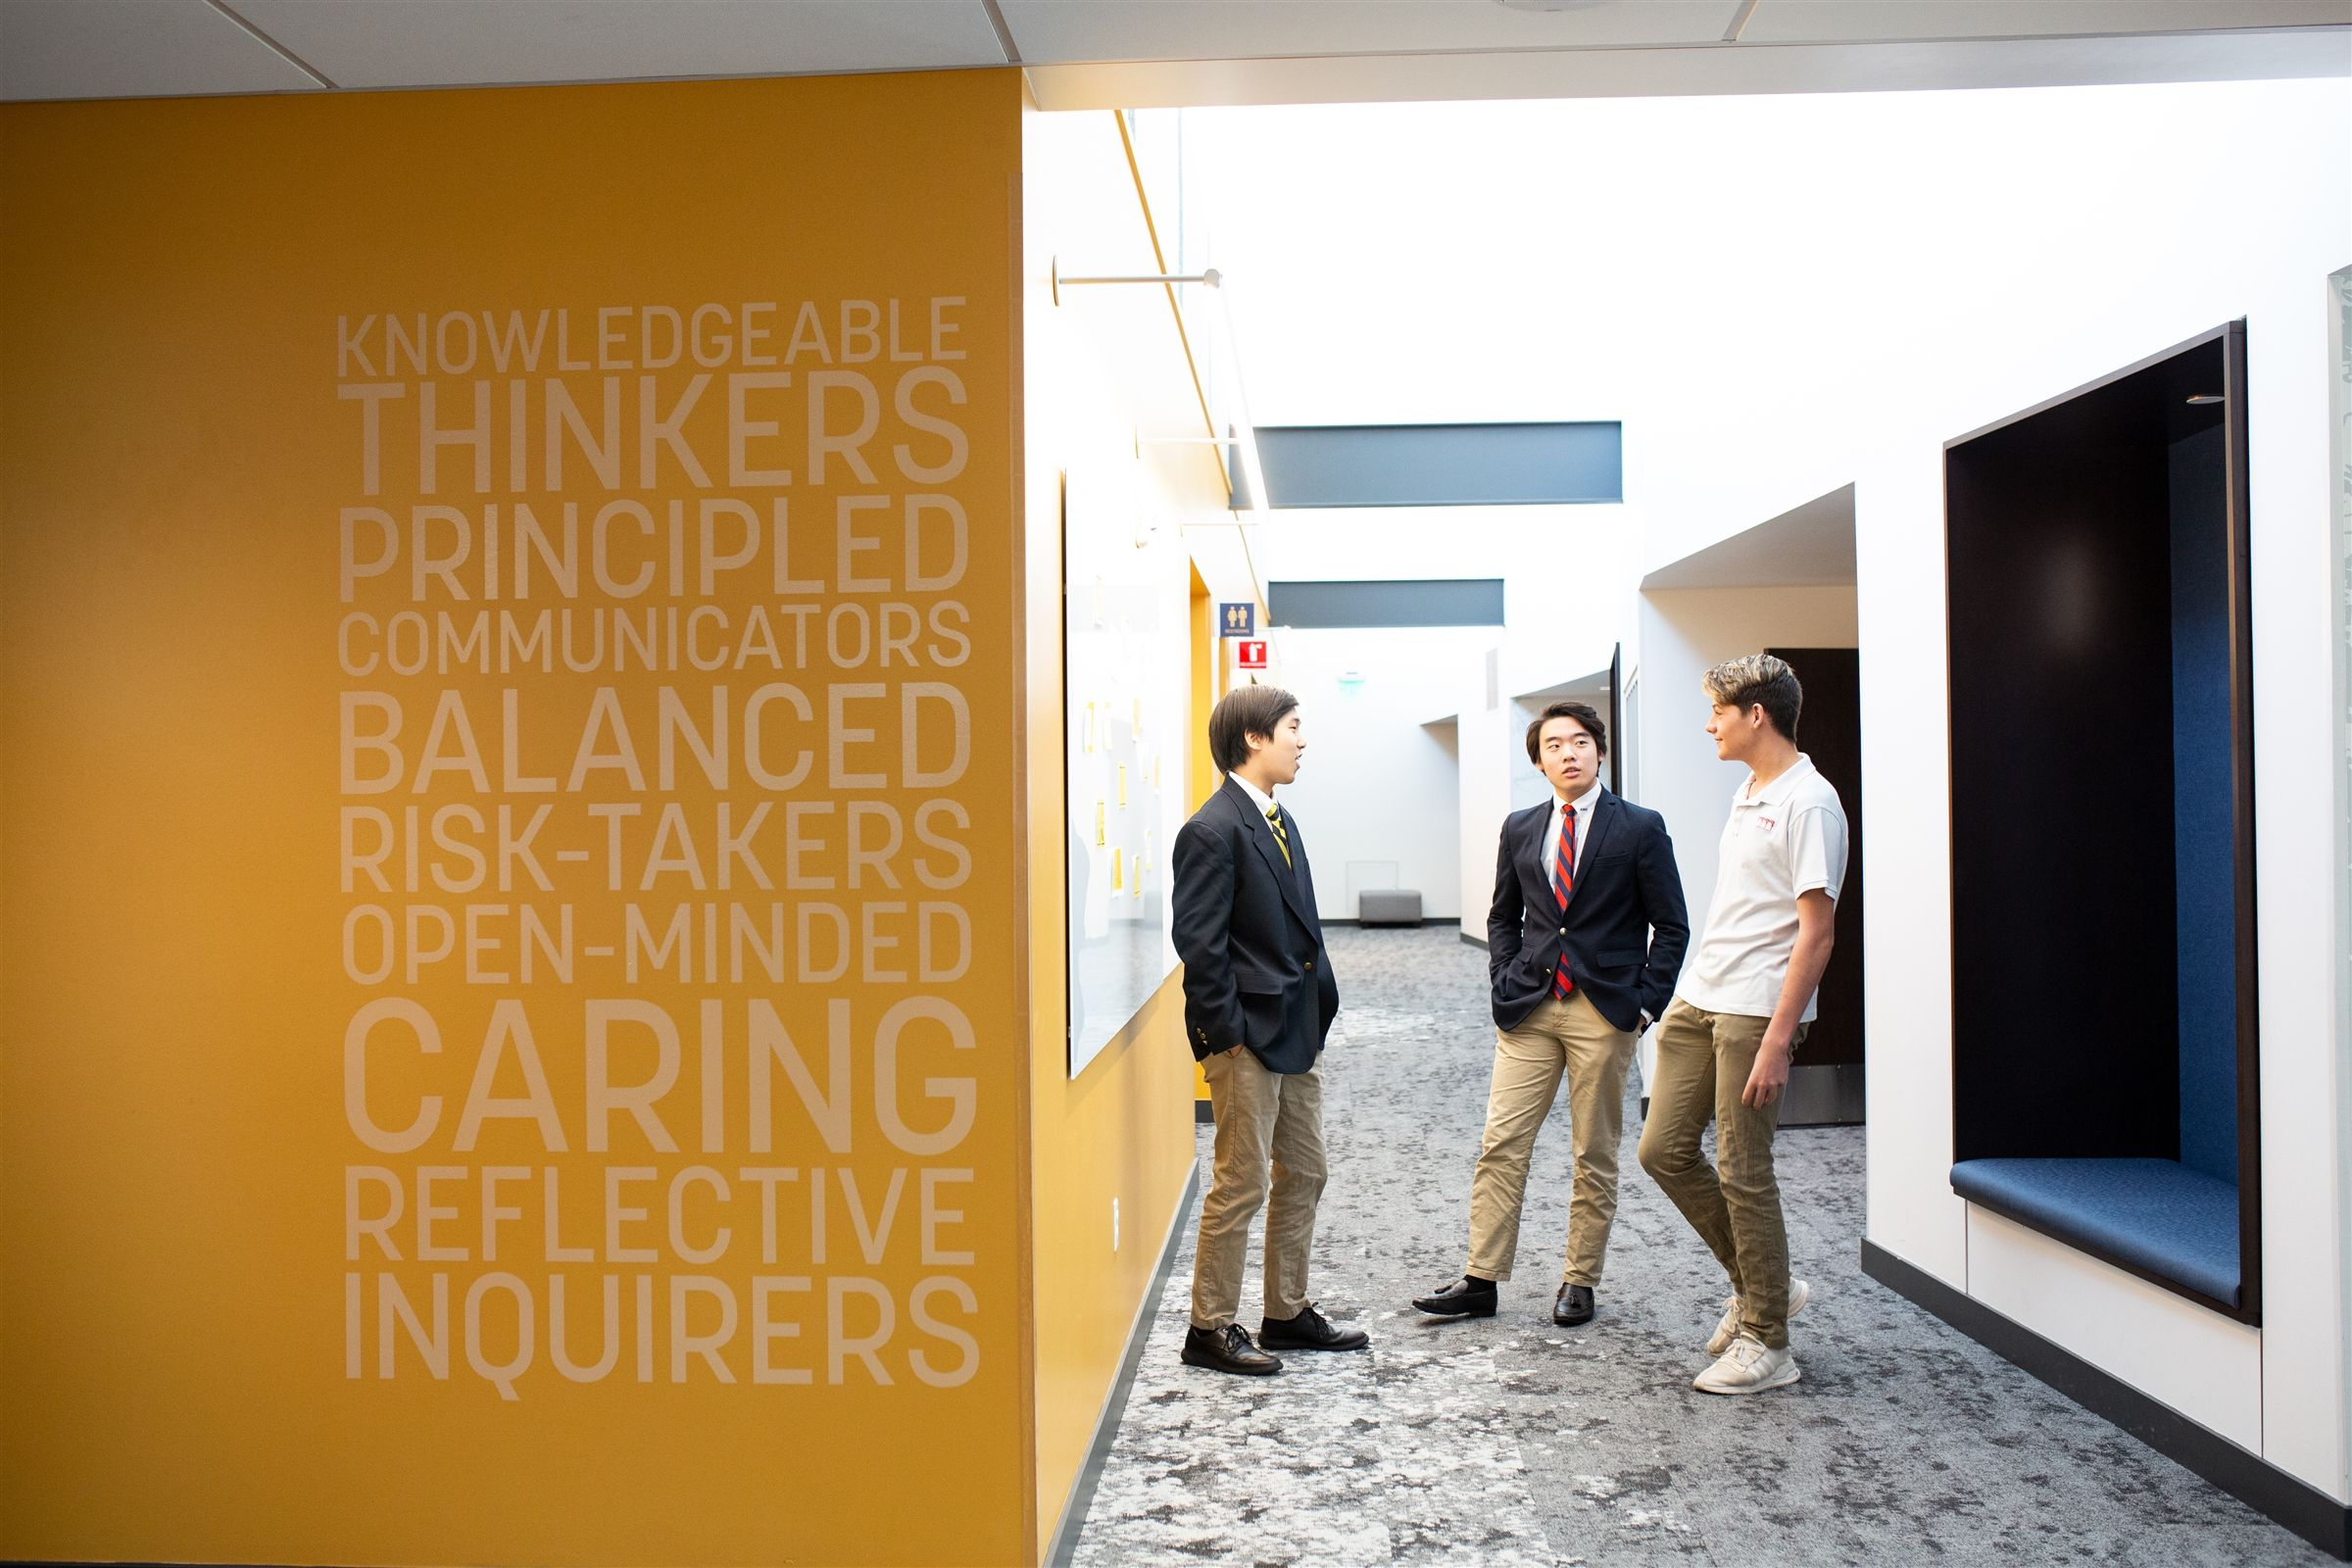 Skylights, open spaces and the IB Learner Profile characterize the top floor of the Upper School for Boys building.